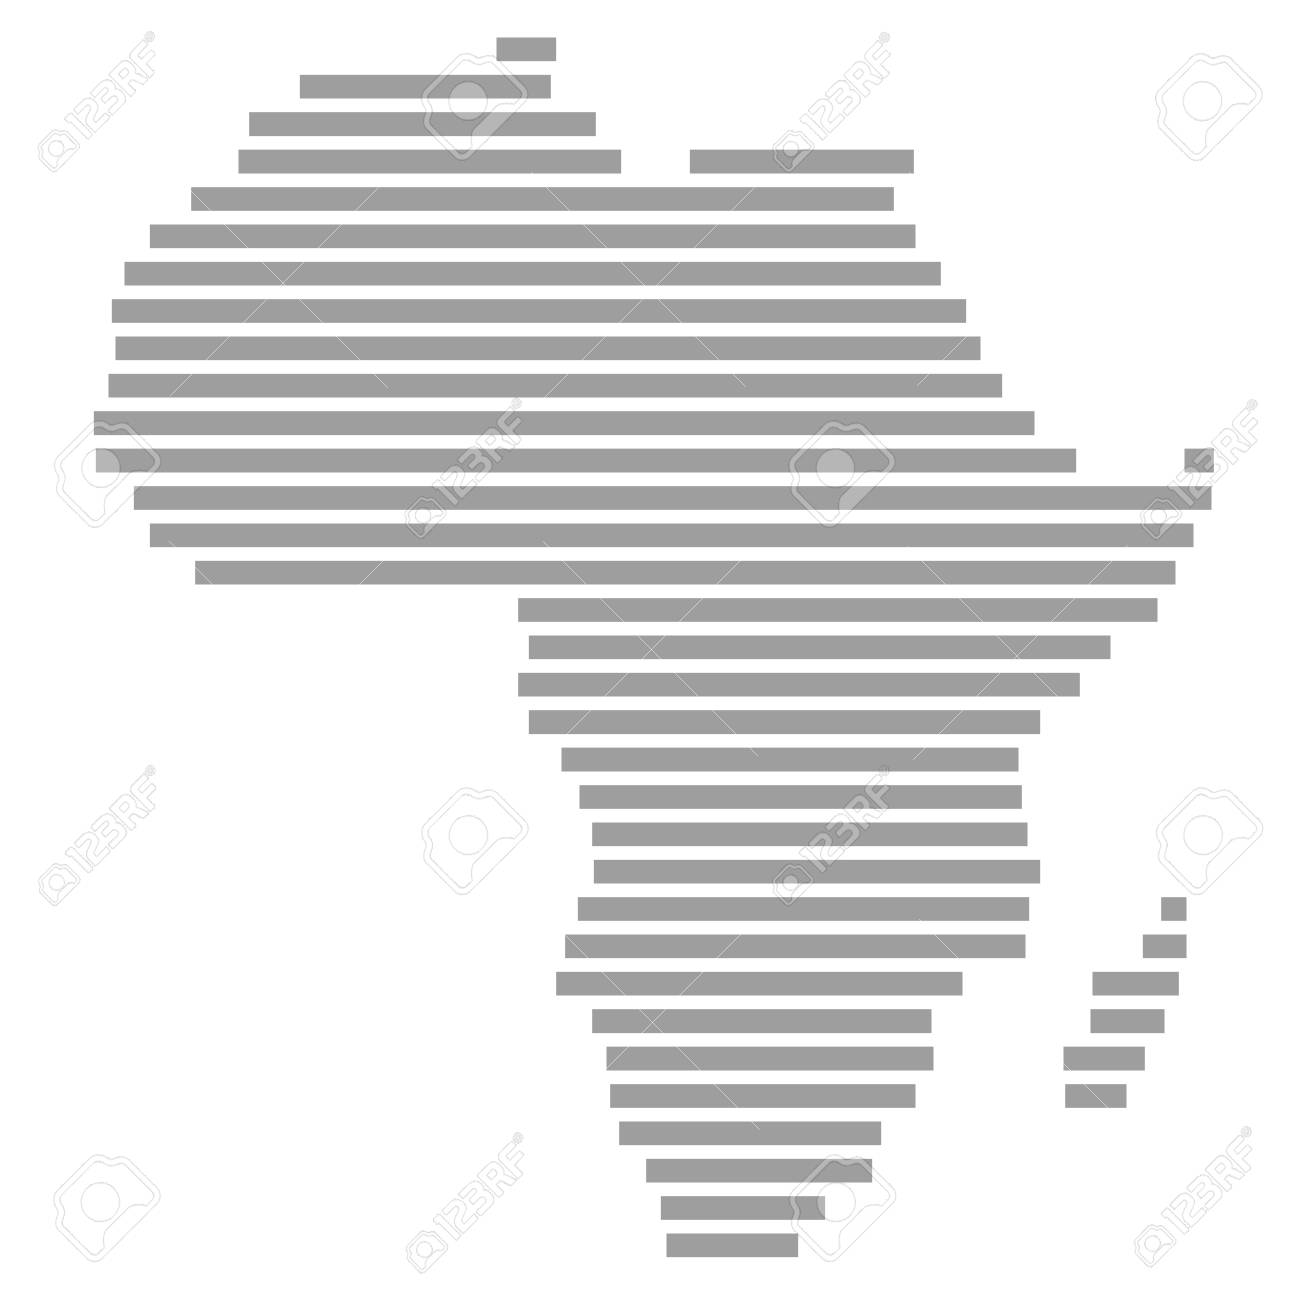 Modern isolated map of Africa with grey stripes